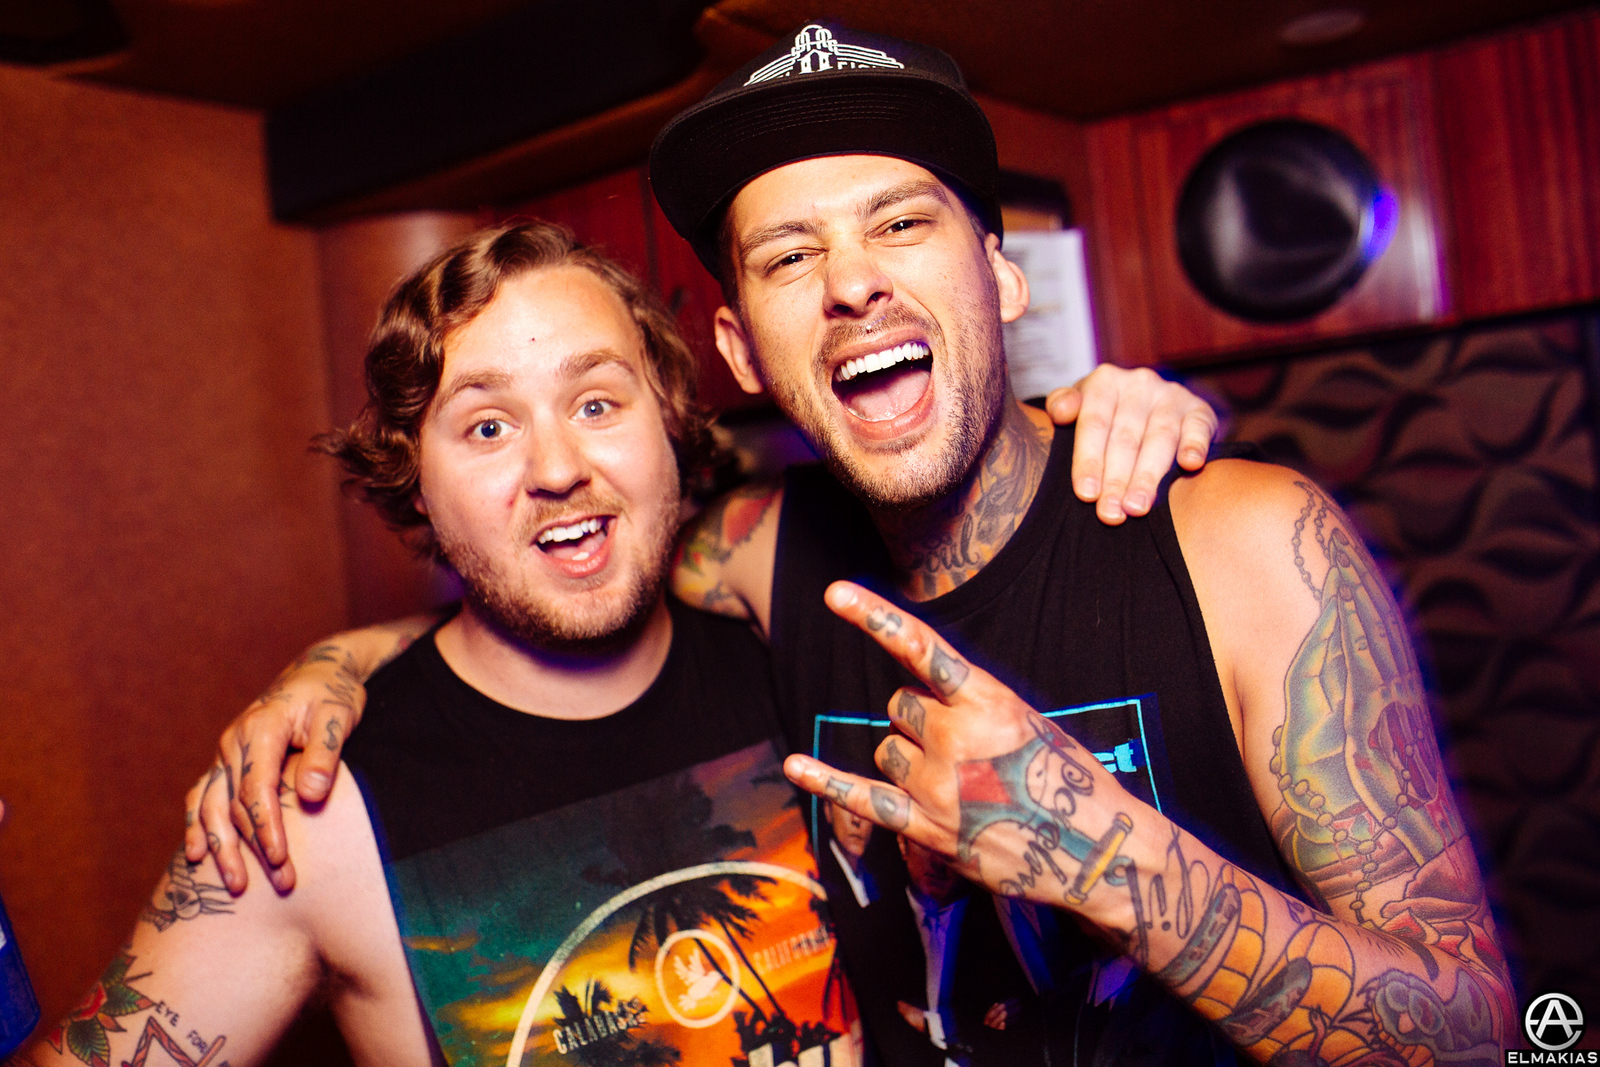 Ryan Burt of The Amity Affliction and Mike Fuentes of Pierce the Veil at Warped Tour 2015 by Adam Elmakias